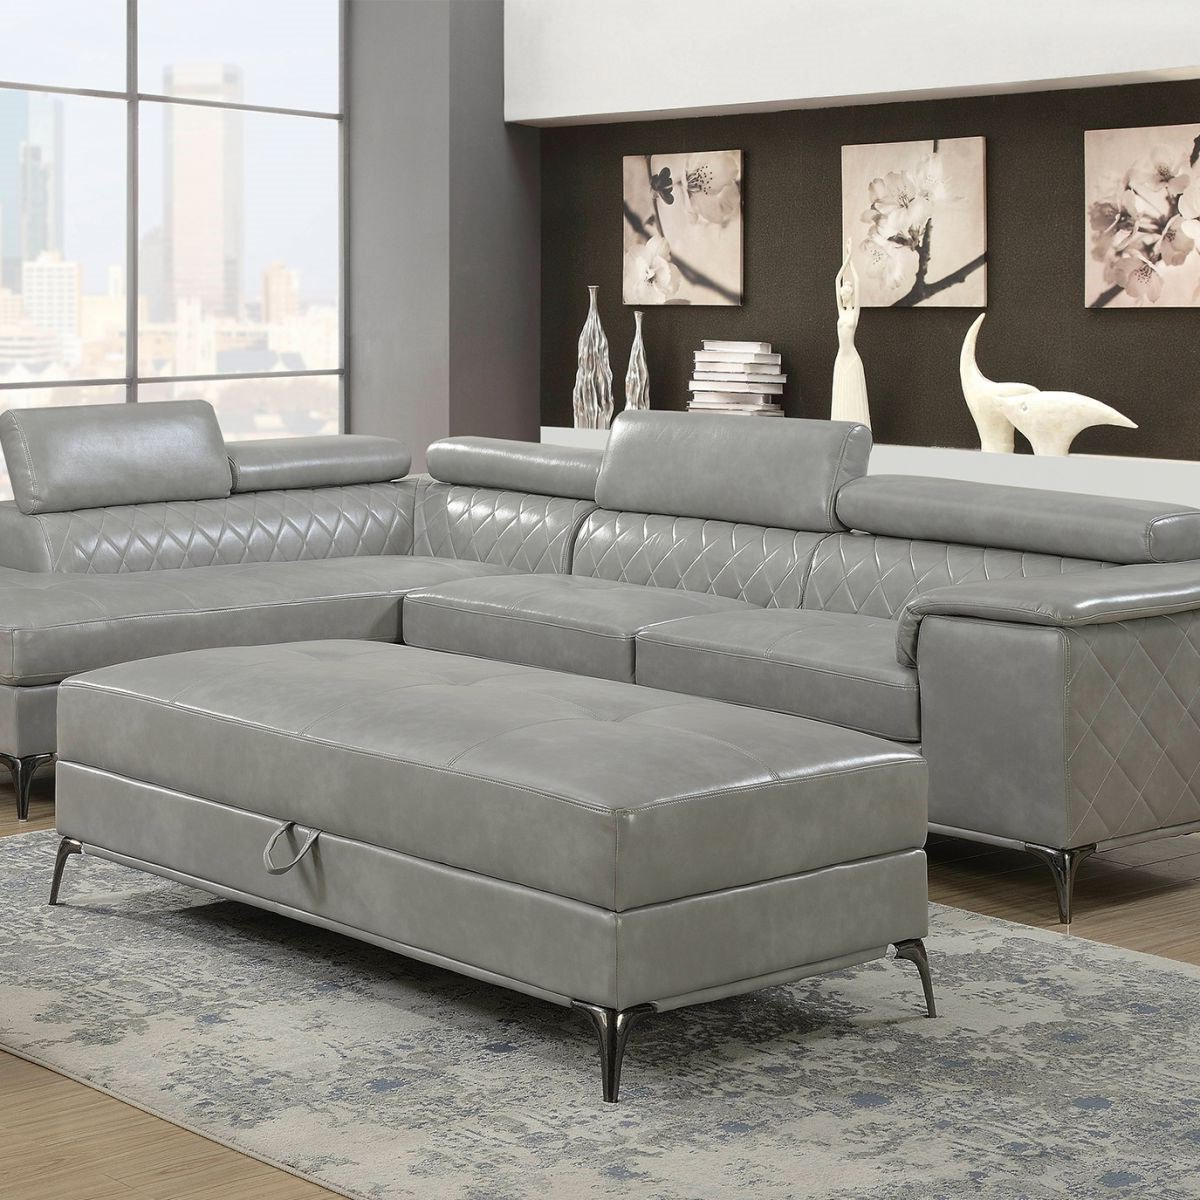 Cosmos Grey 2 Piece Sectionals With Laf Chaise Intended For Most Current Worthington Grey 2 Pc Sectional & Ottoman (View 5 of 20)